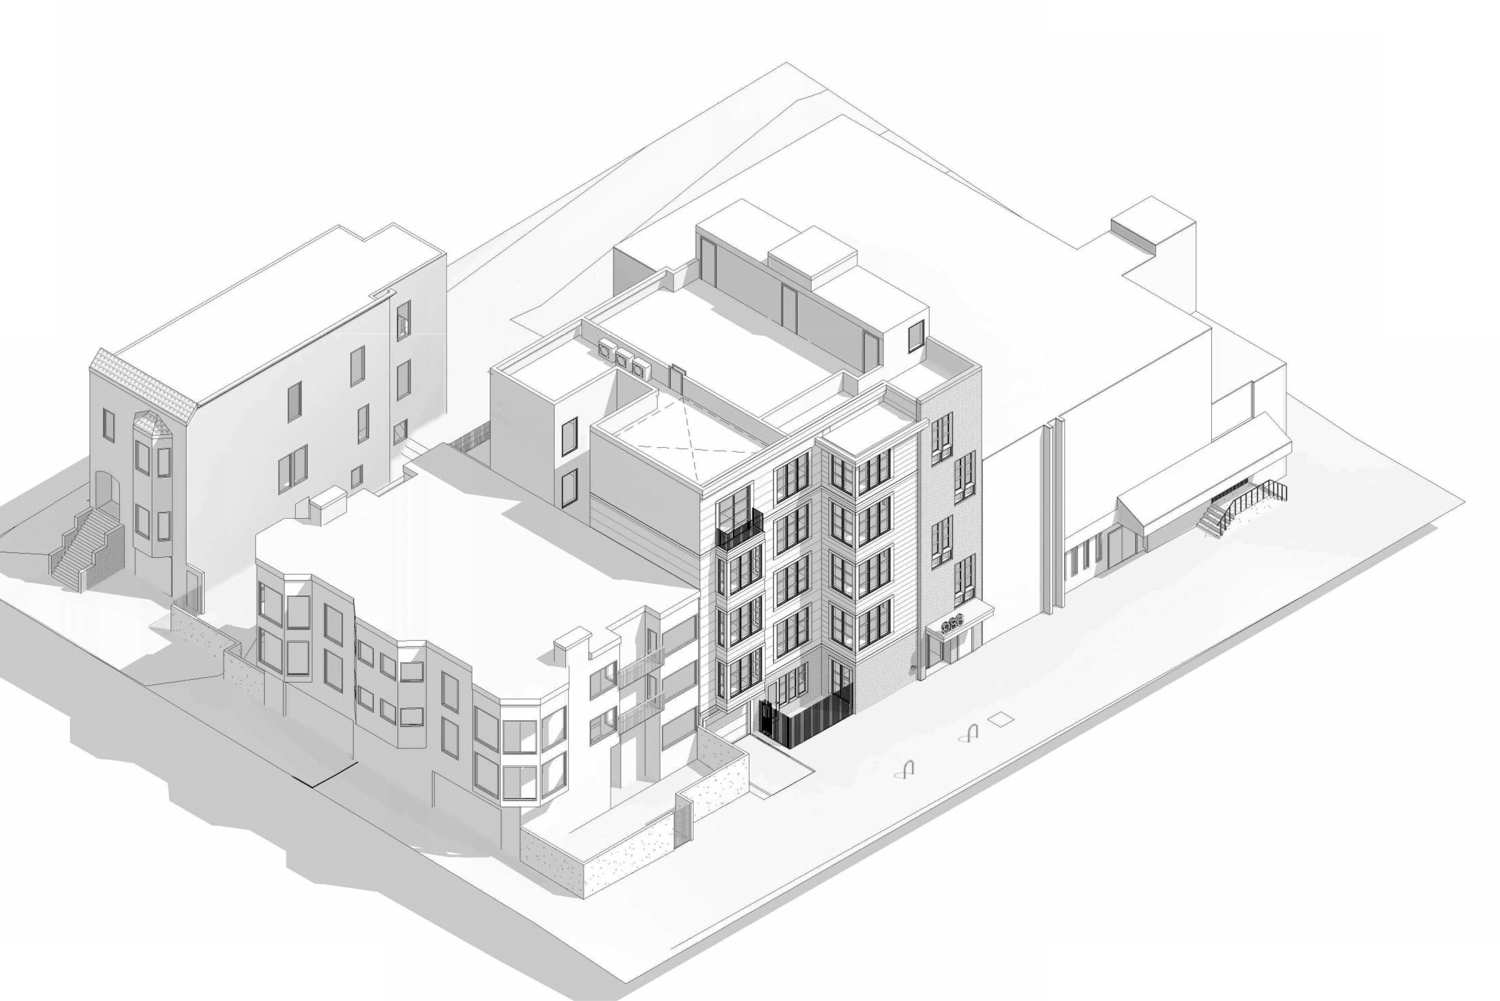 986 South Van Ness Avenue aerial perspective, rendering by Kotas Pantaleoni Architects